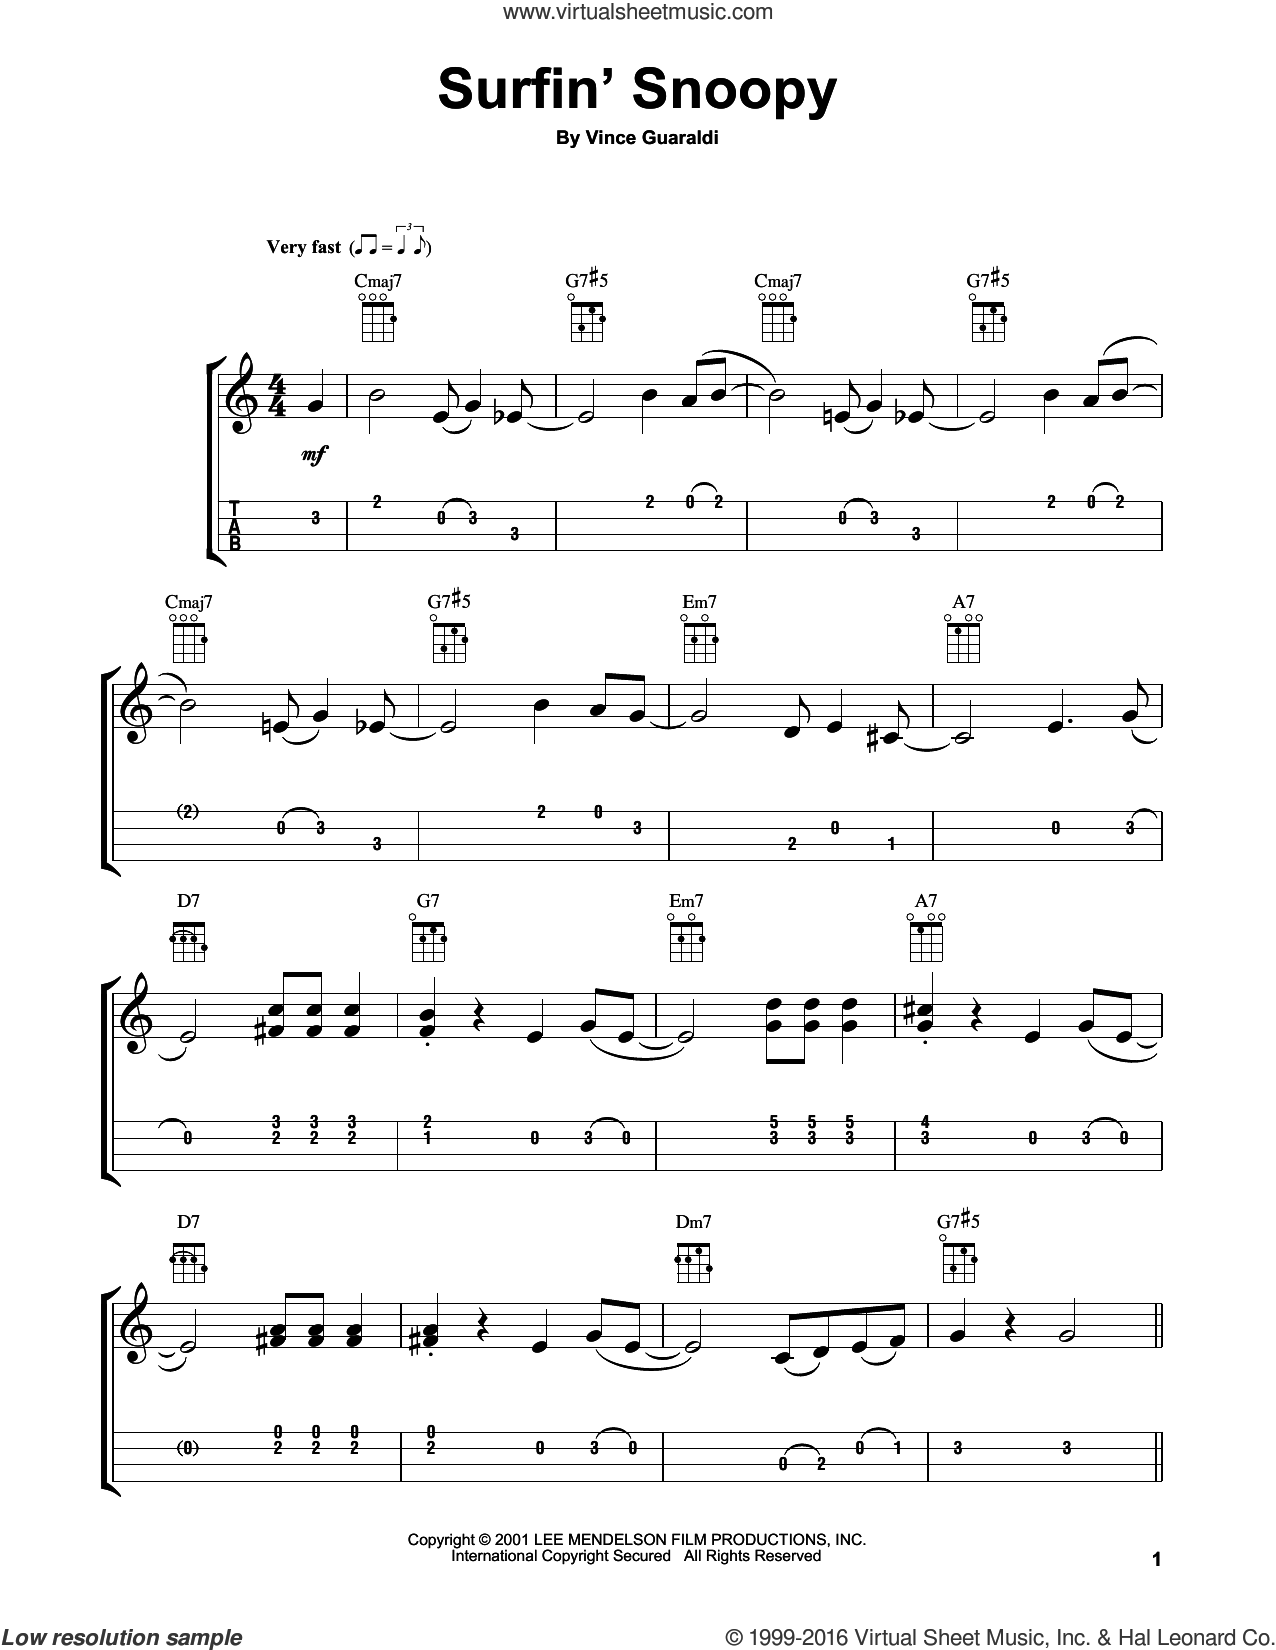 Surfin' Snoopy sheet music for ukulele by Vince Guaraldi. Score Image Preview.